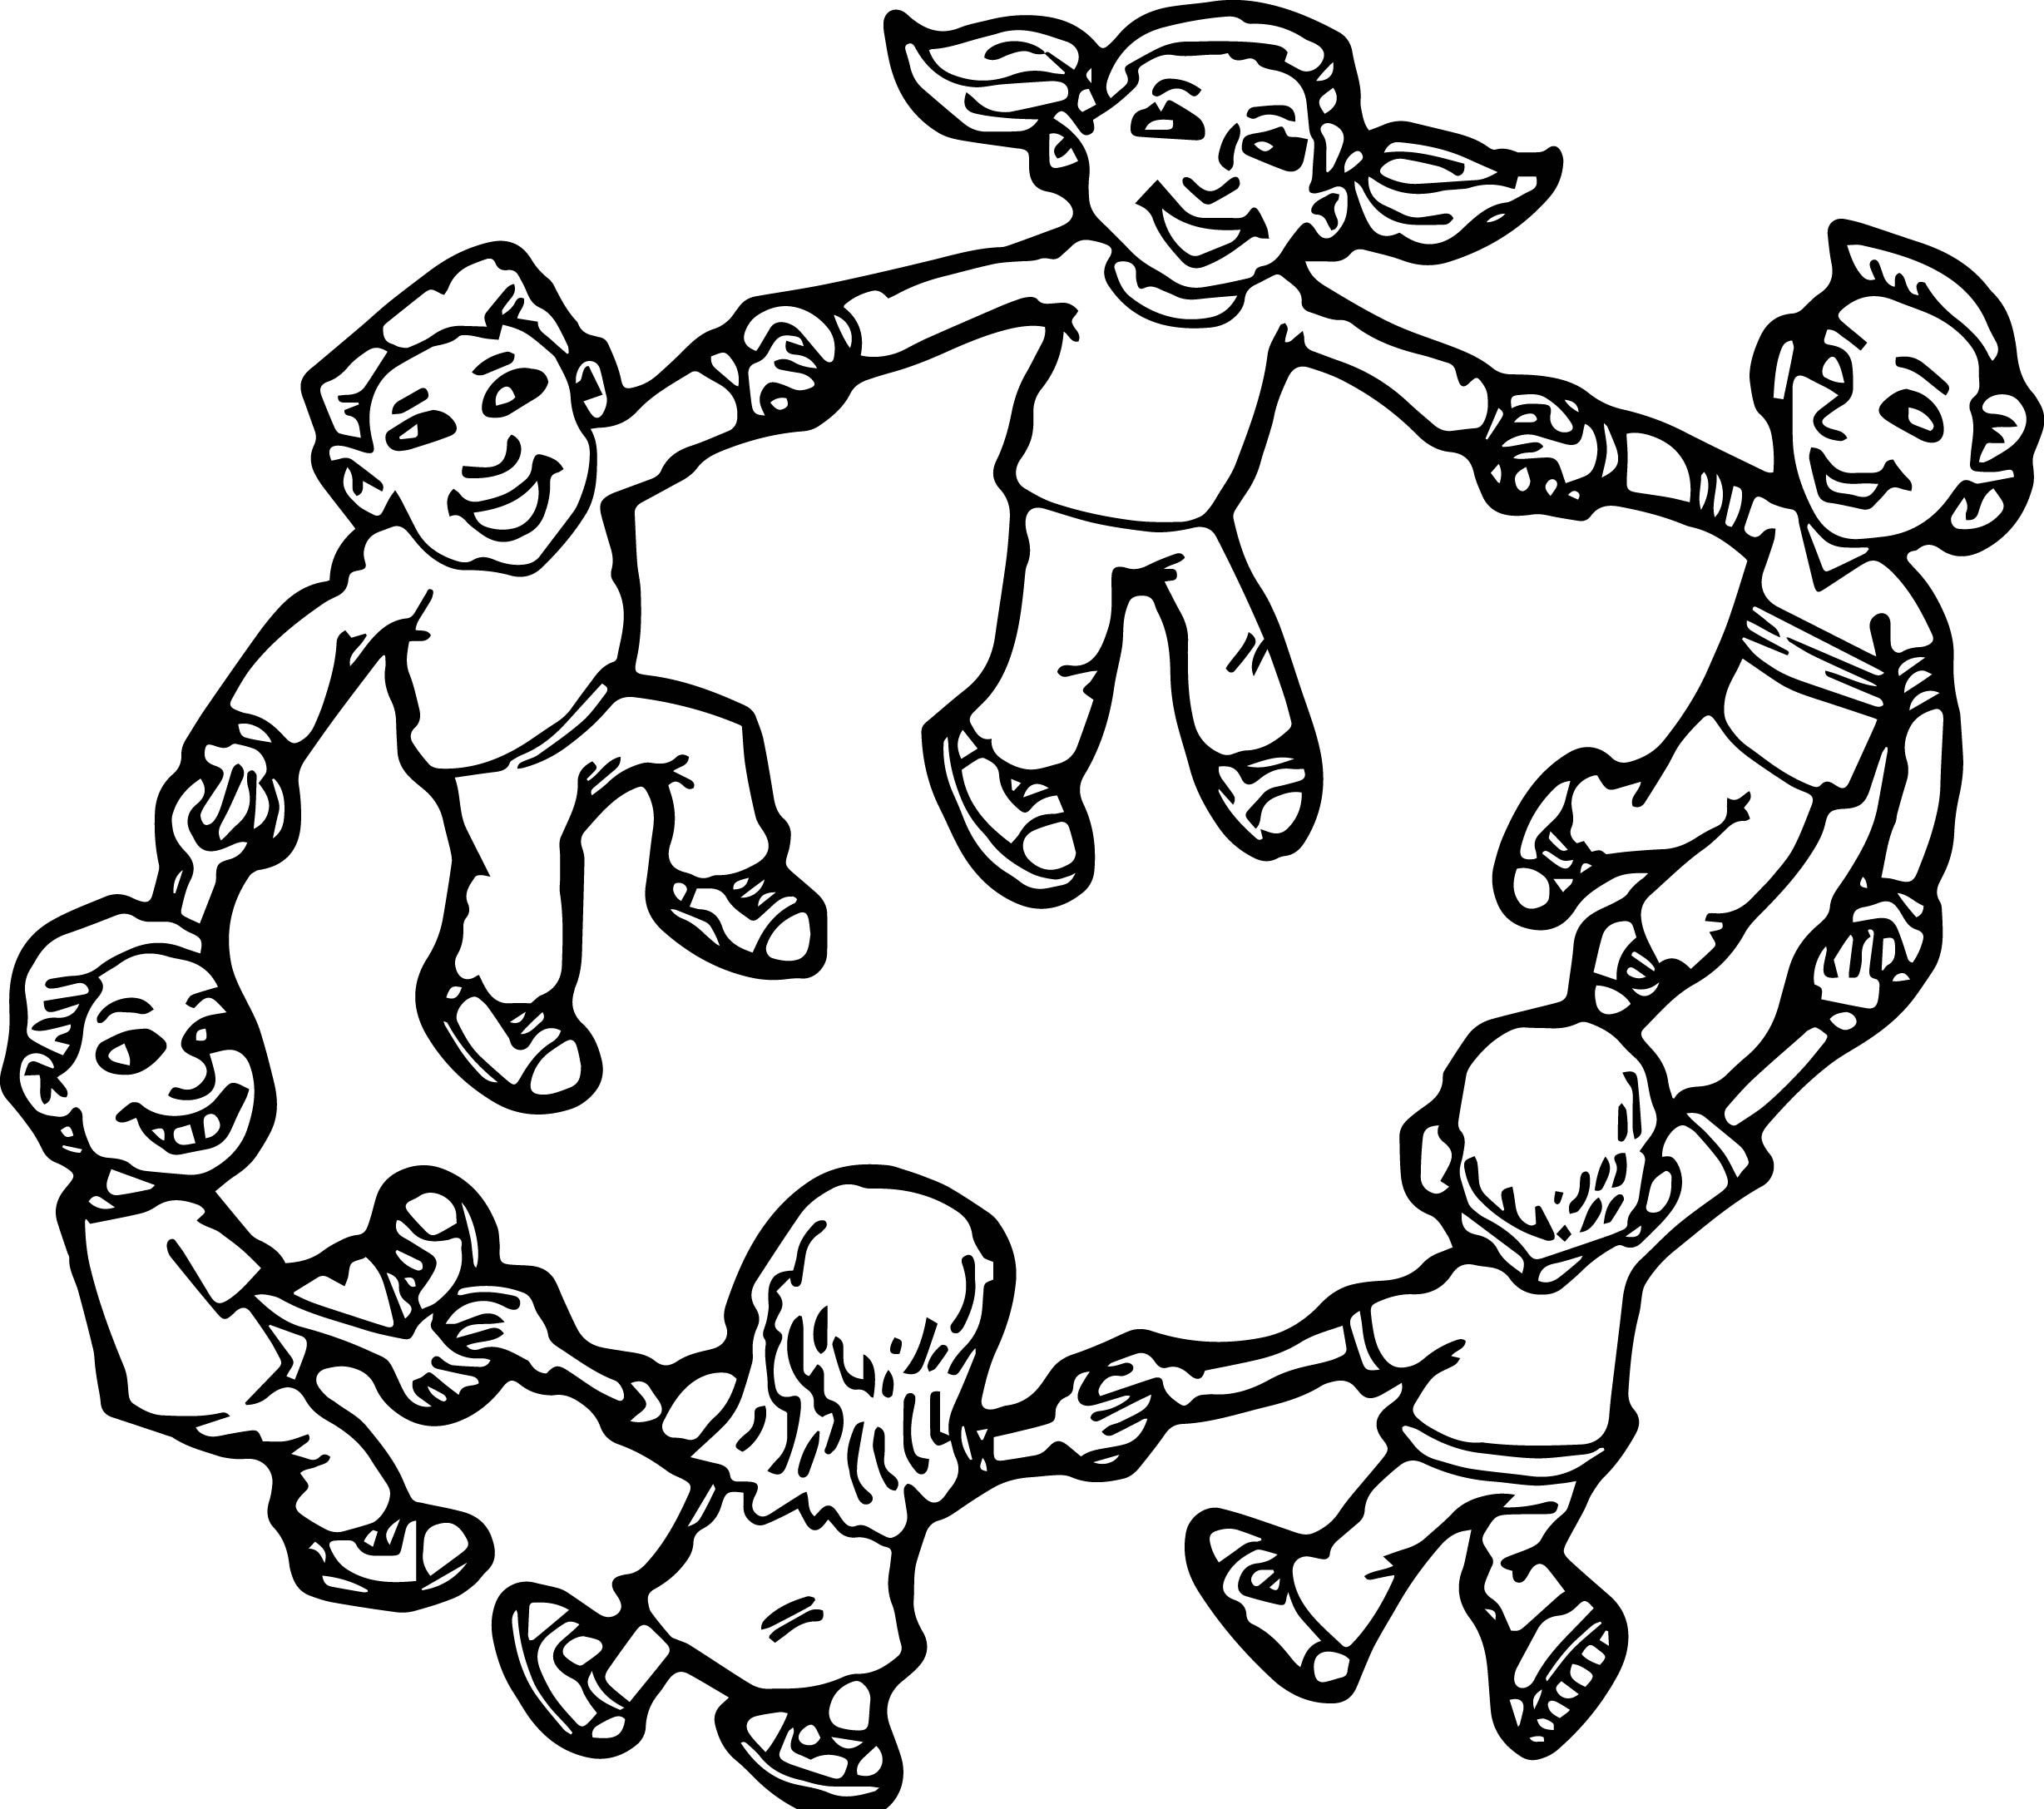 Cool Children Playing Children Coloring Page Coloring Pages Summer Coloring Pages Coloring Pages Inspirational